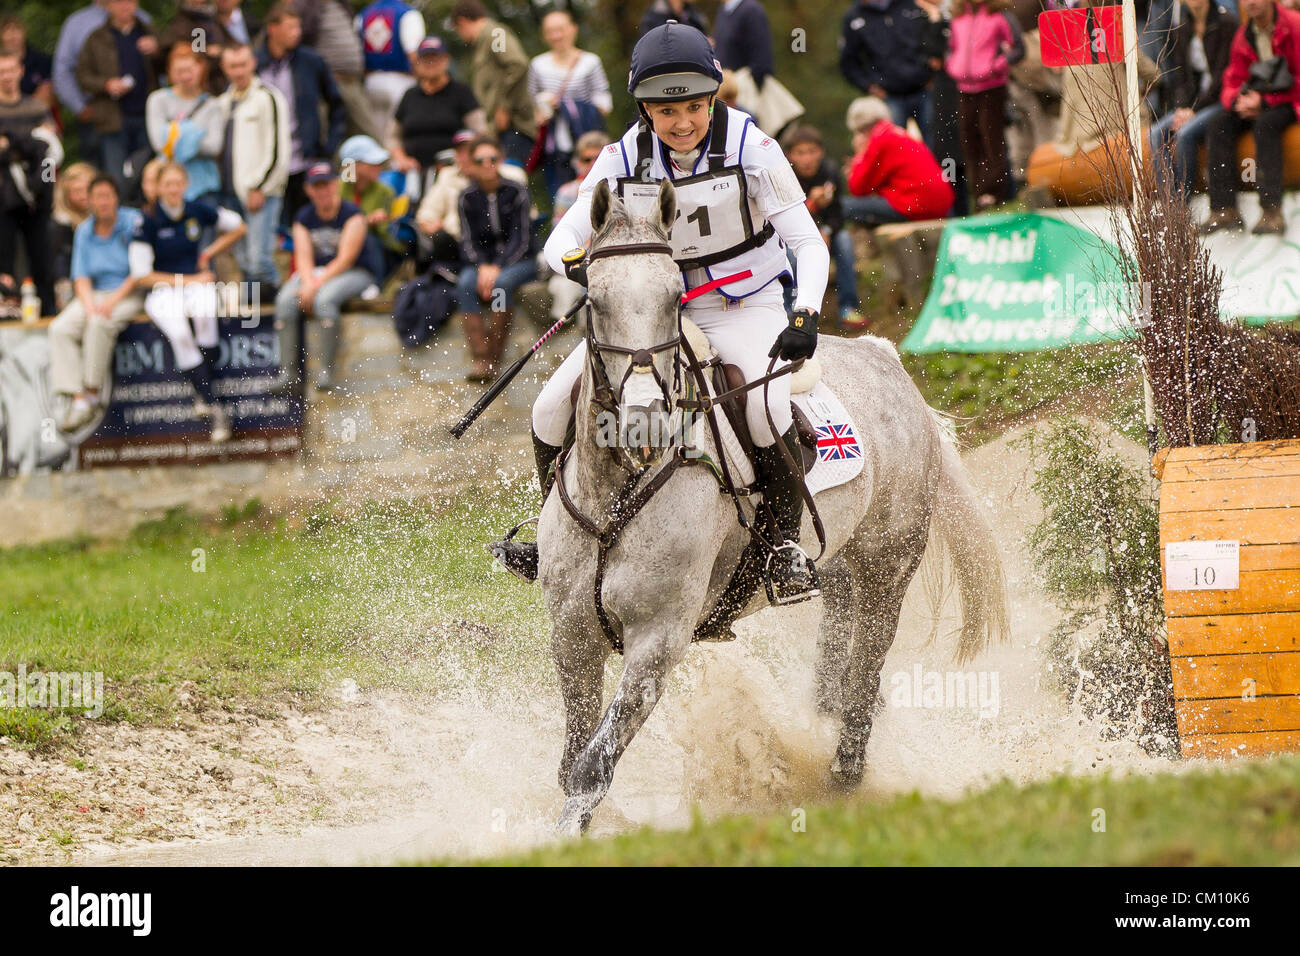 08.09.2012, Strzegon Poland  FEI EUROPEAN EVENTING CHAMPIONSHIPS FOR JUNIORS 2012 CROSS COUNTRY, SOPHIE HOW GBR - Stock Image